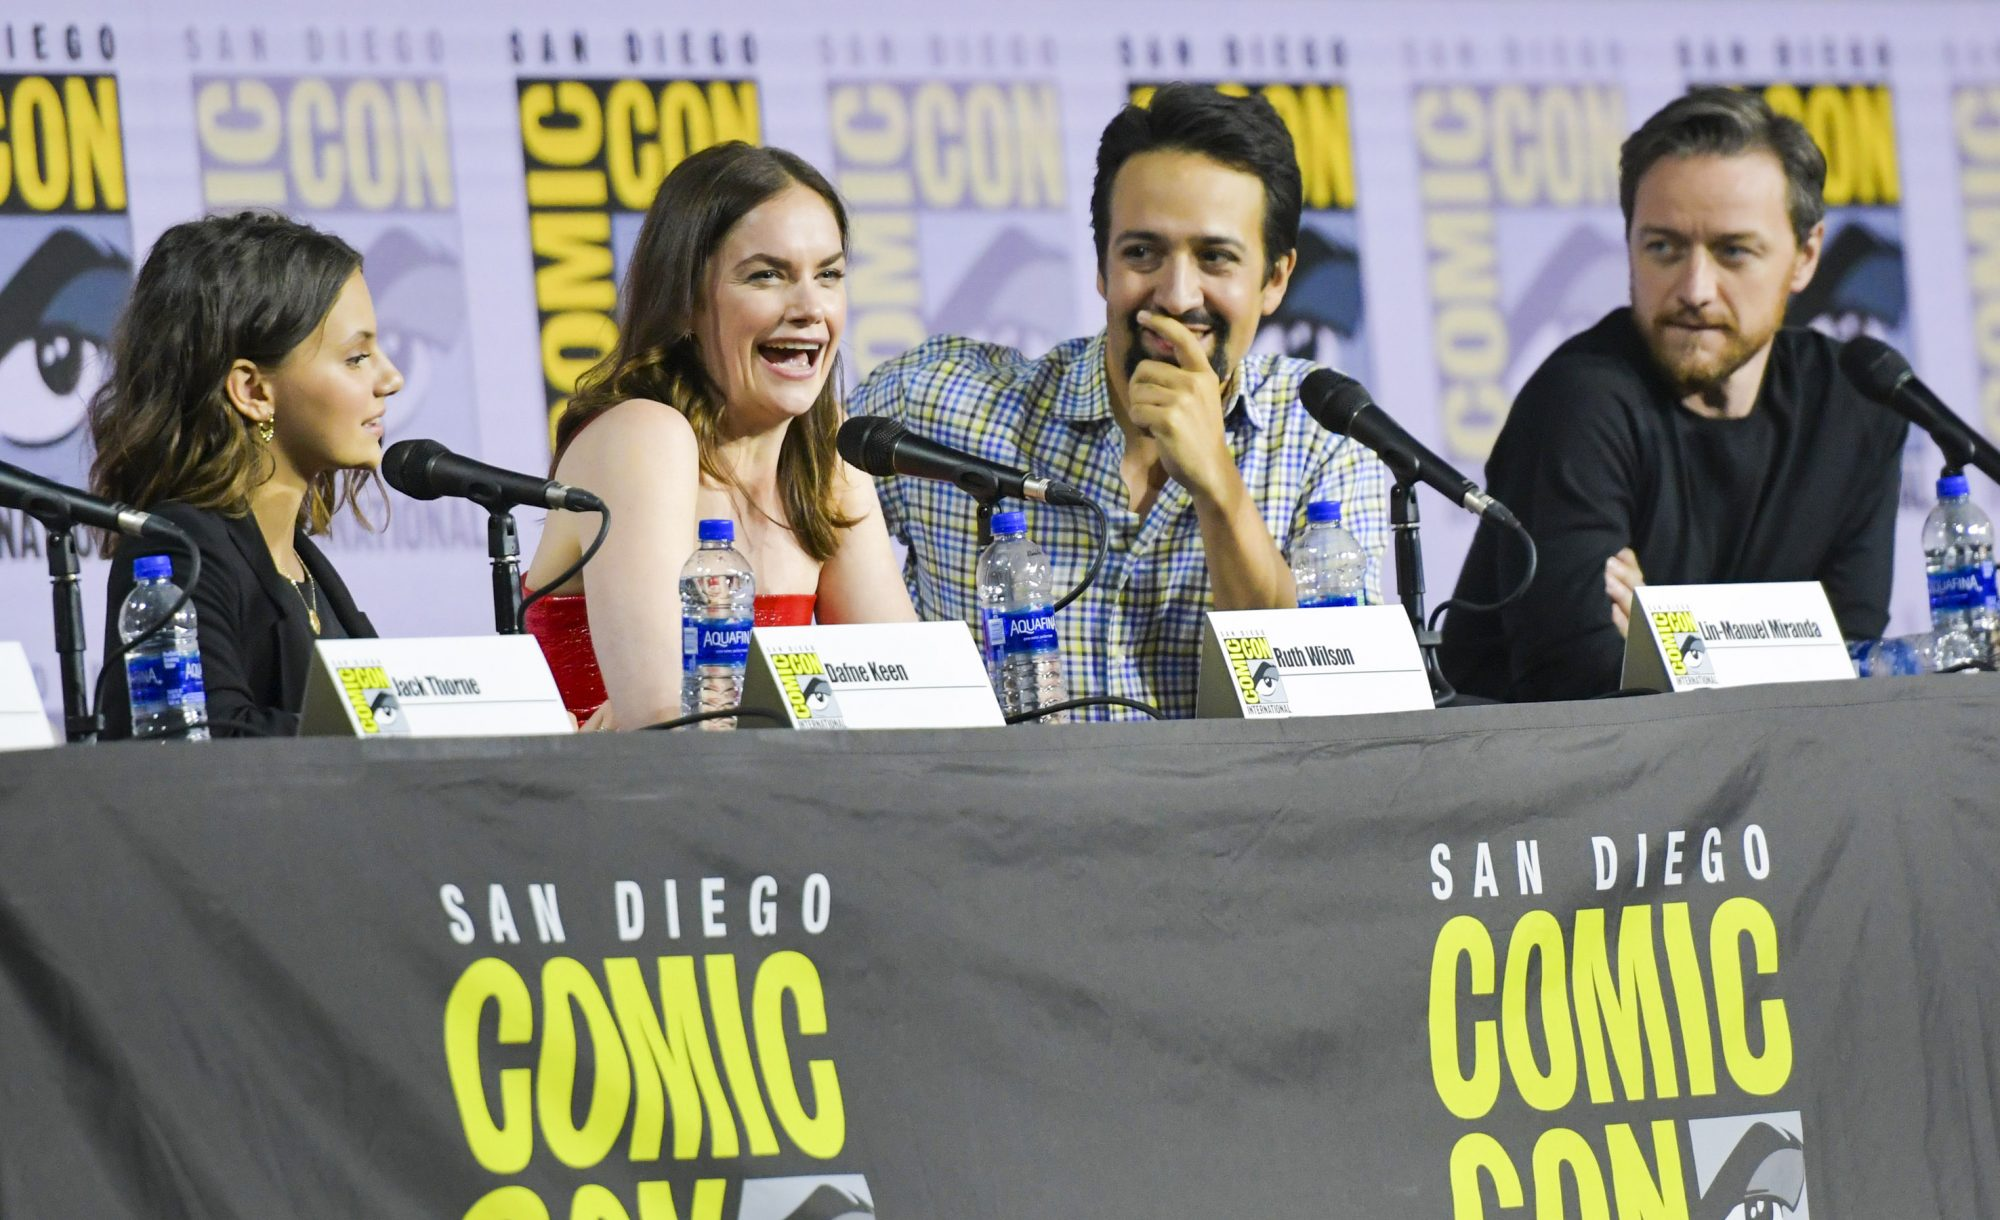 """(L-R) Actors Dafne Keen, Ruth Wilson, Lin-Manuel Miranda and James McAvoy speak during the """"His Dark Materials"""" panel in Hall H during Comic Con in San Diego, California on July 18, 2019. (Photo by Chris Delmas / AFP) (Photo credit should read CHRIS DELMAS/AFP/Getty Images)"""